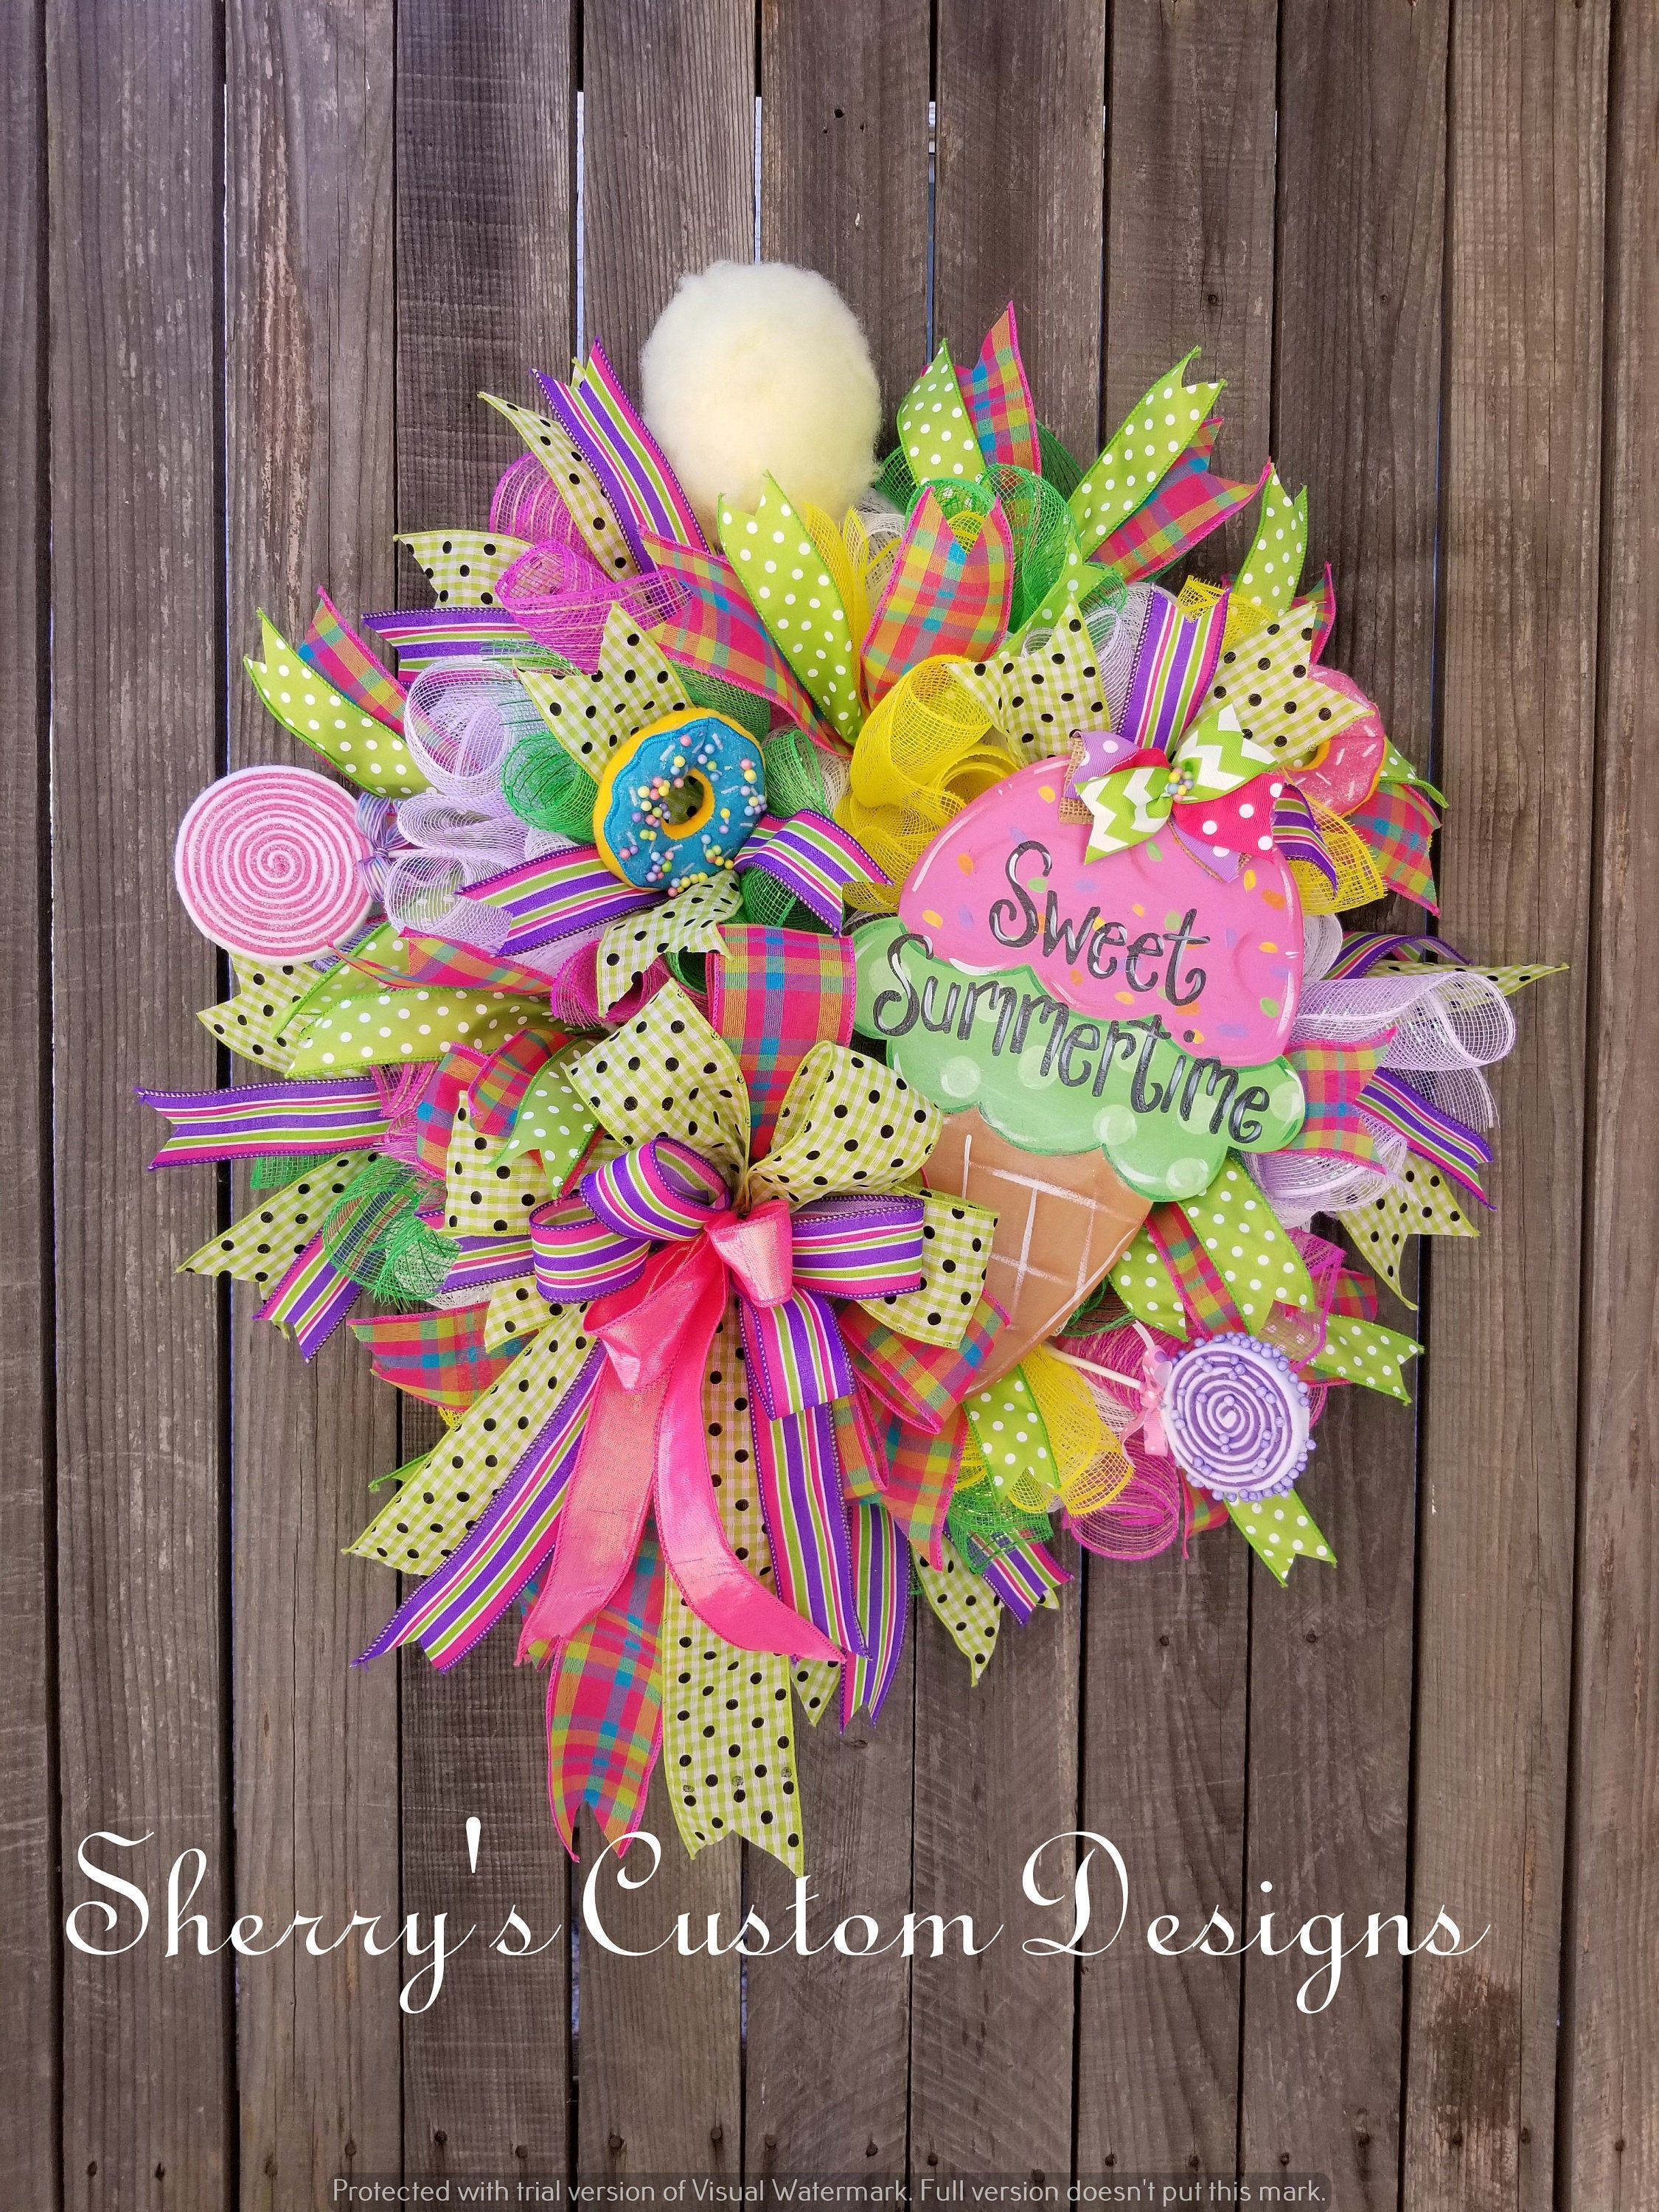 Photo of Summer wreath, sweet summer time, front door wreath, wreath for the front door, candy decor, welcome wreath, mesh wreath, candy wreath